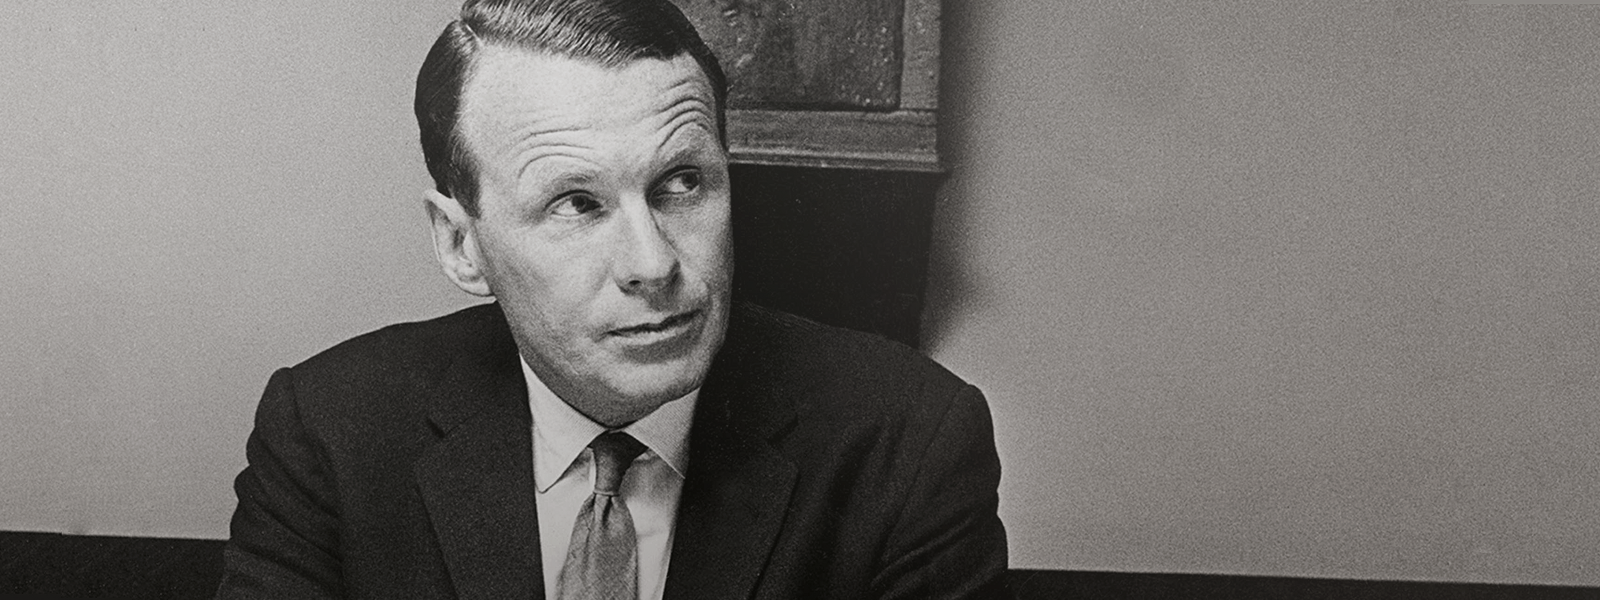 David Ogilvy's 20 unconventional rules for getting clients